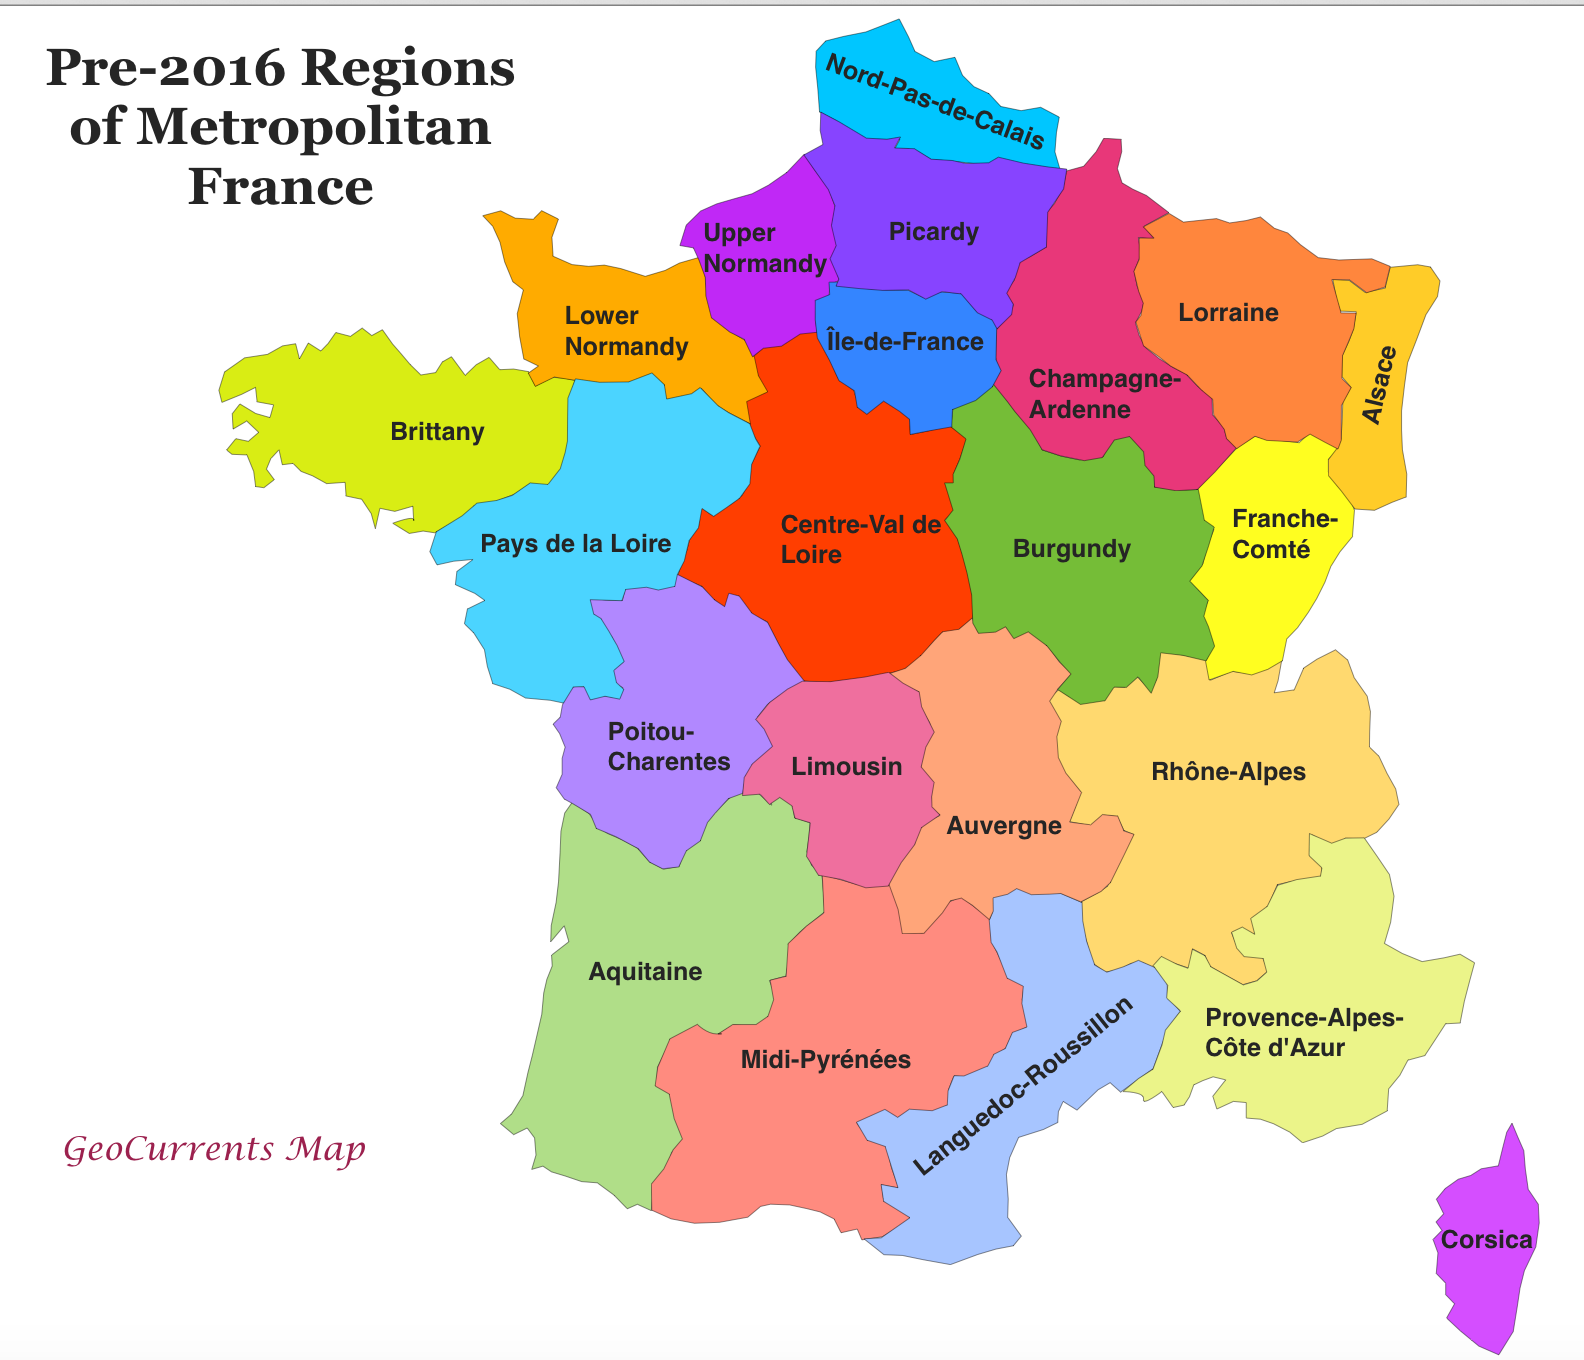 Regions In France Map.Pre 2016 Regions Of France Map Foodwineclick